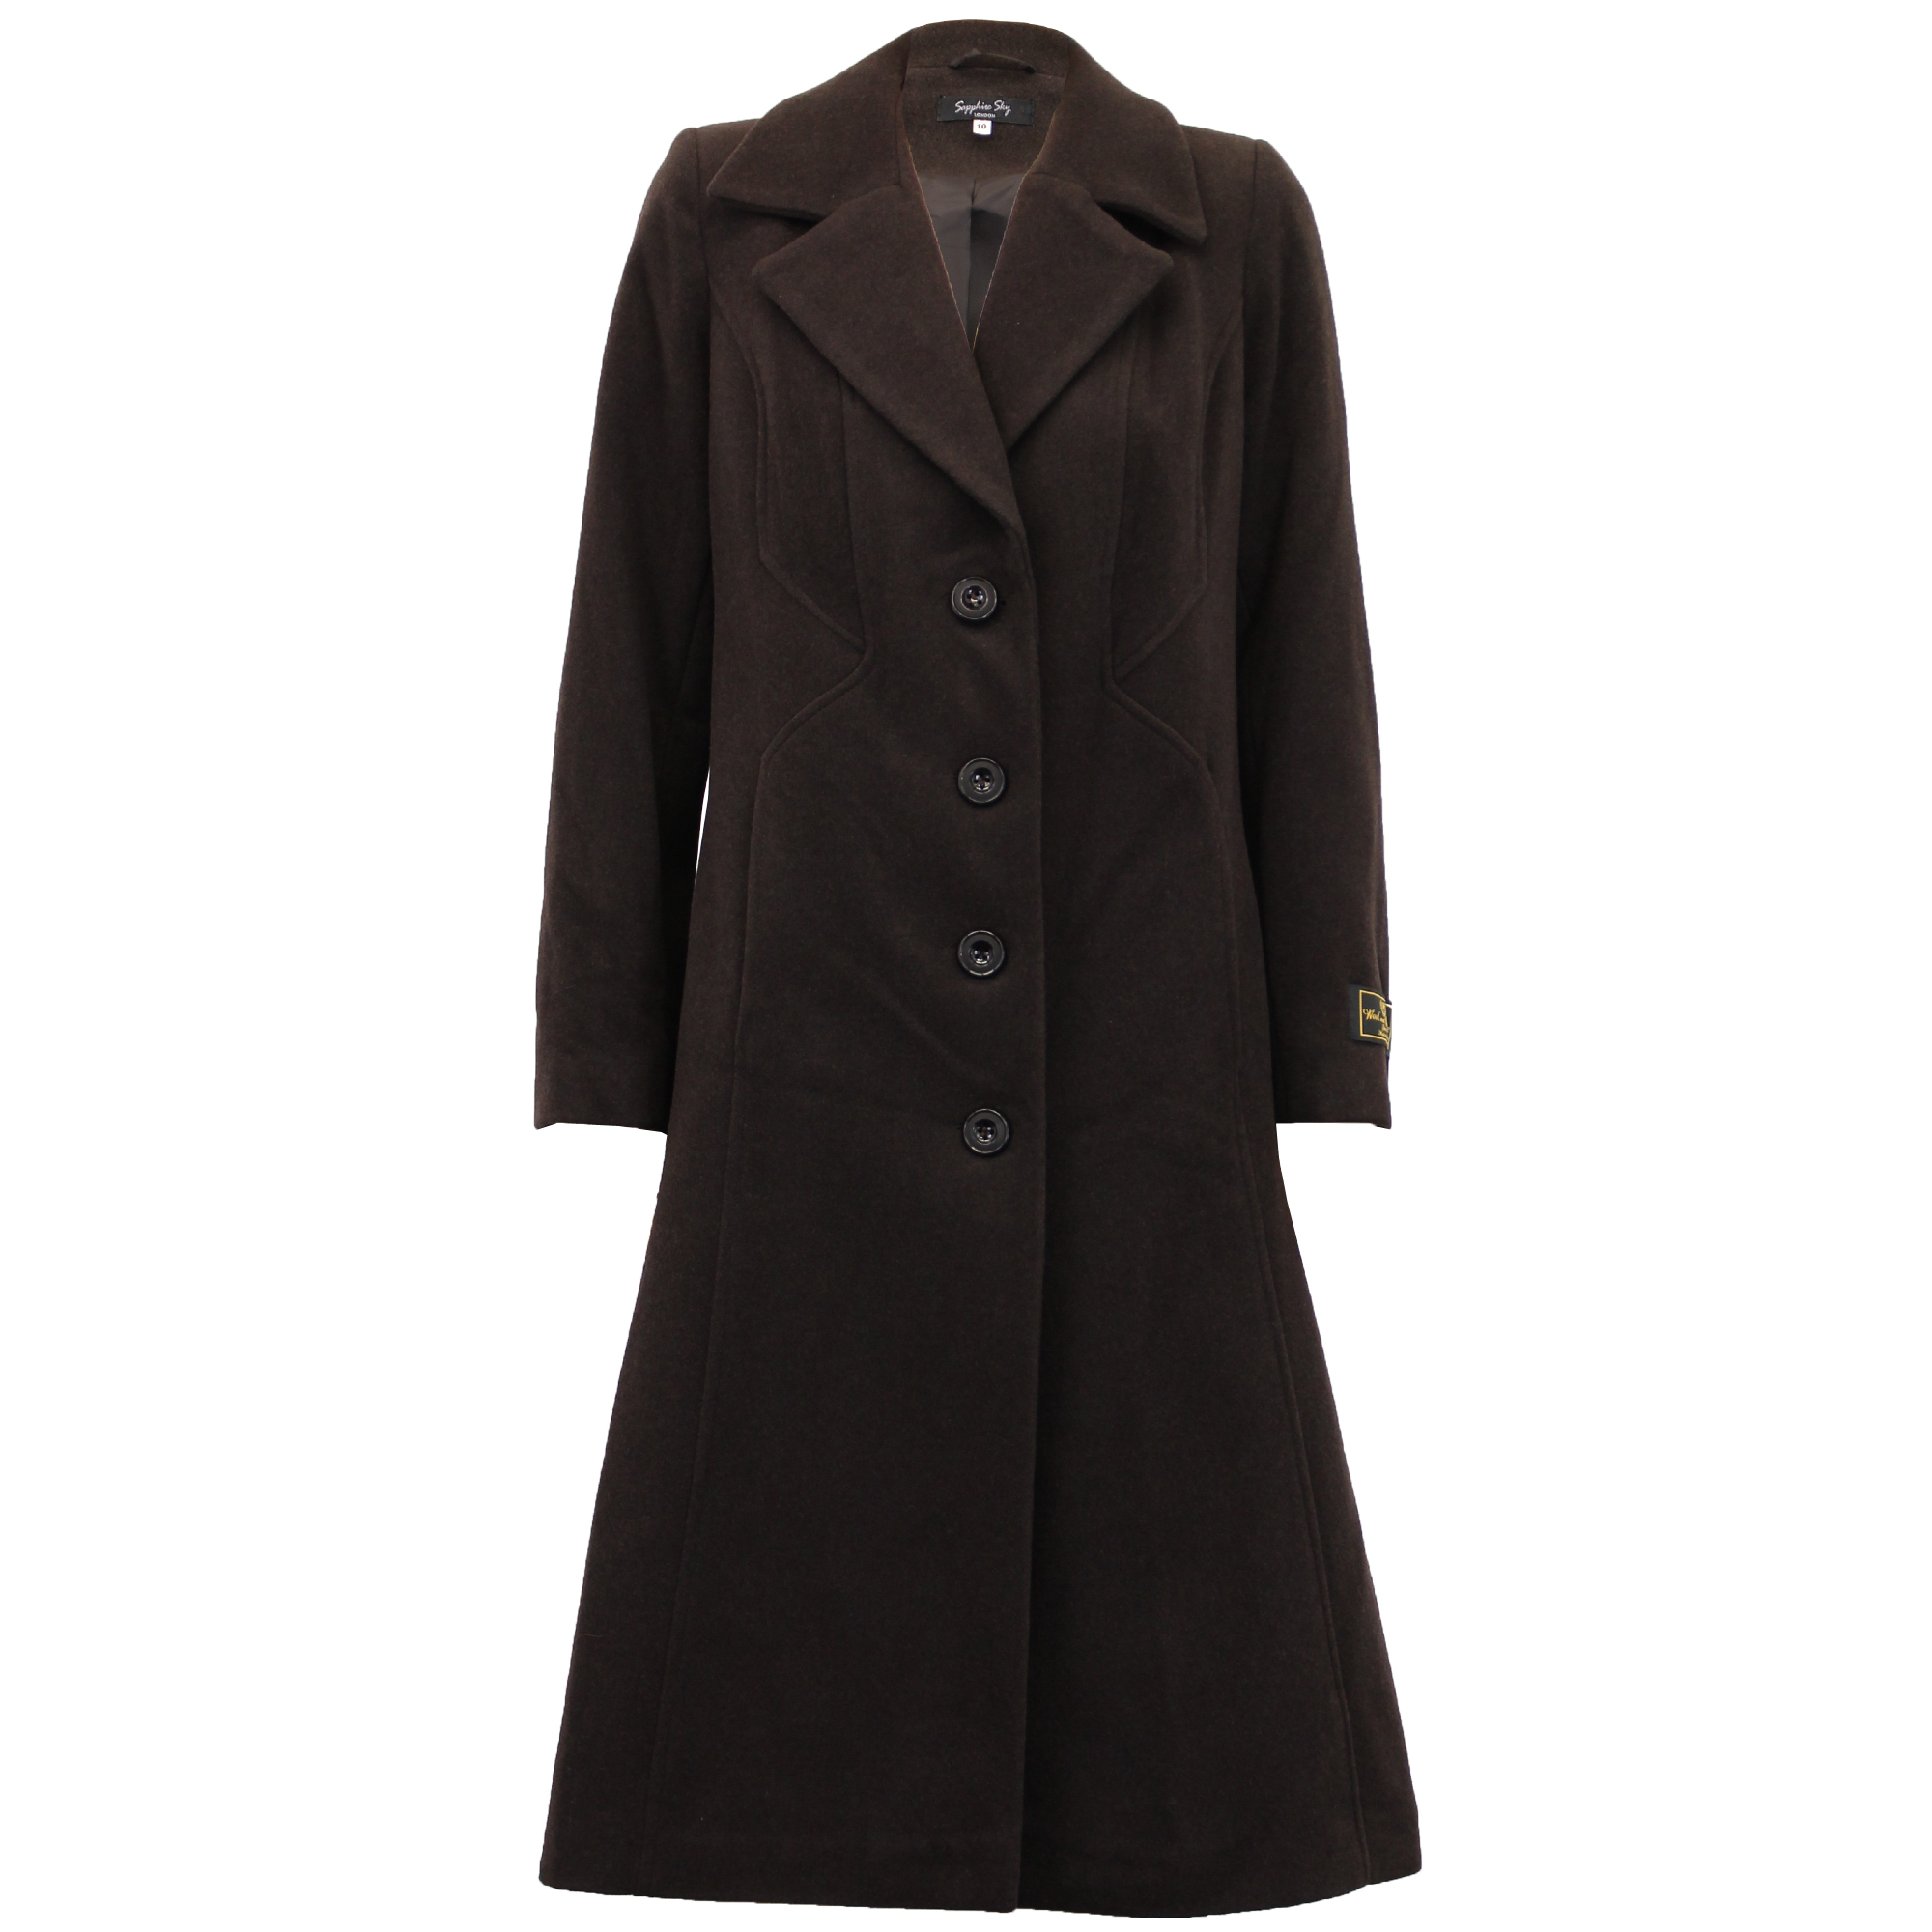 Burberry - Toggle Detail Wool Coat I want a toggle coat so badly! Find this Pin and more on Women's Wool Coats by Wool Coats & Stuff Coats & Stuff. I need this coat! Women's Toggle Stylish Coats Fall Winter Fashion Trends Women.